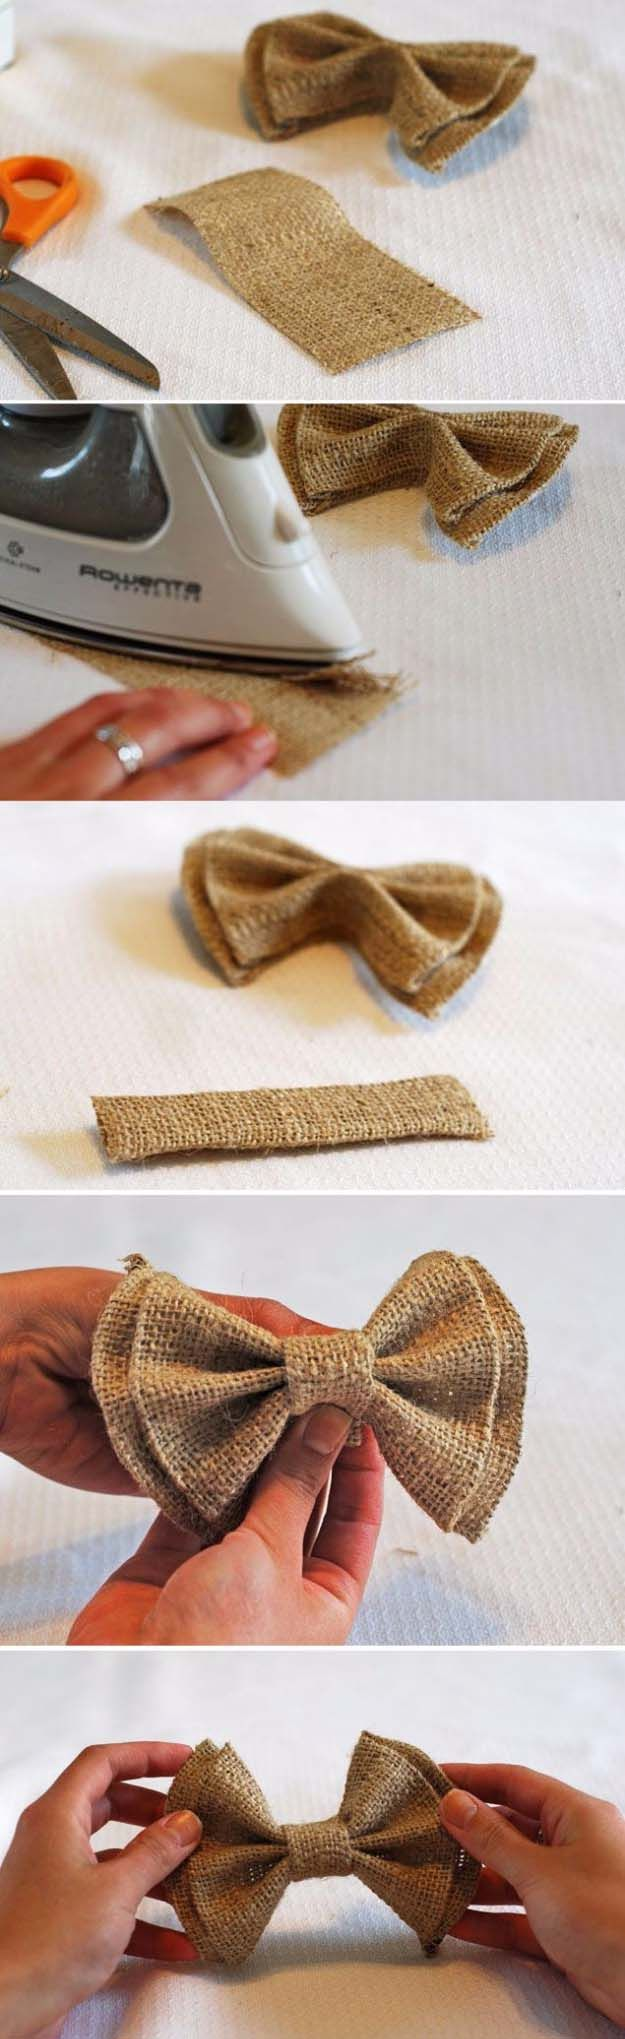 Best 20 Burlap crafts ideas on Pinterest Burlap decorations